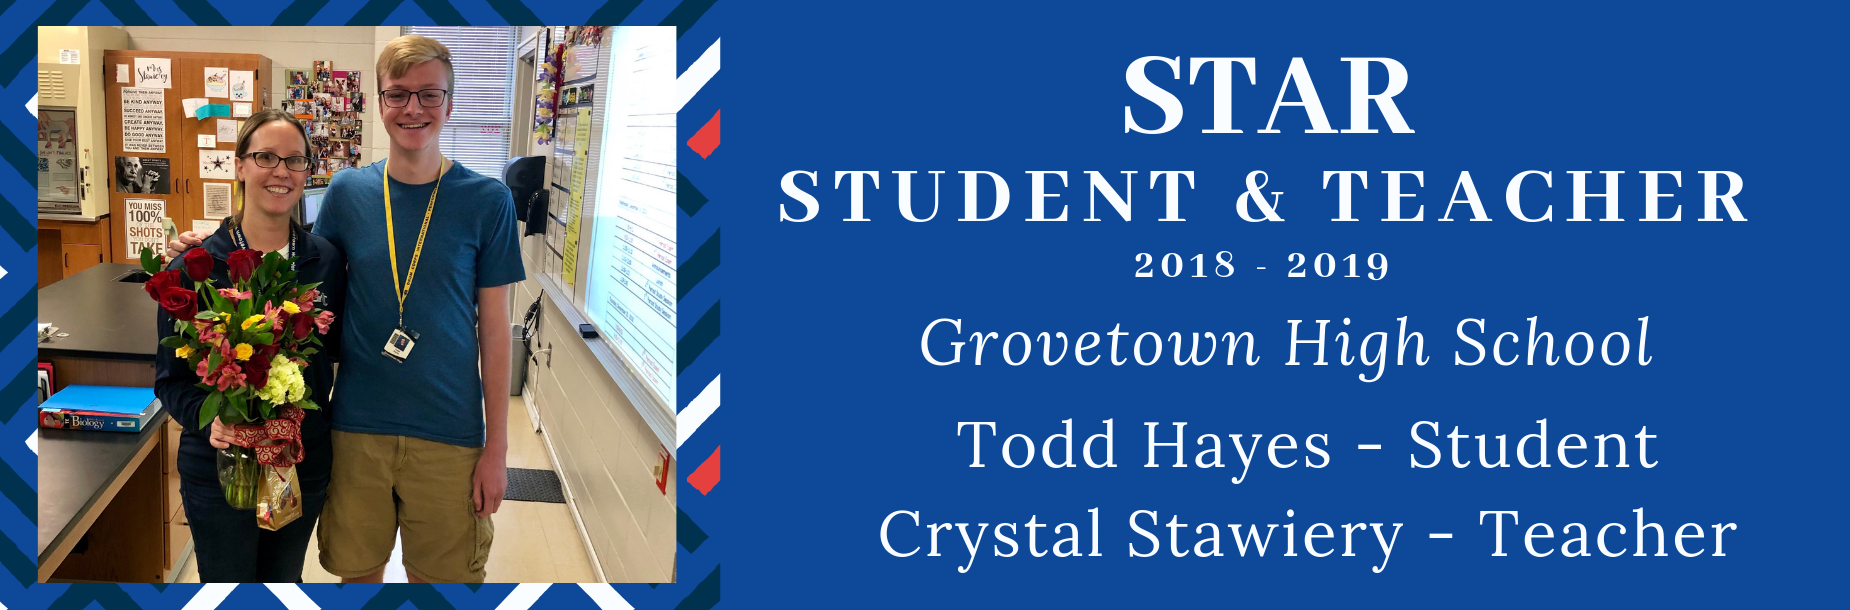 Grovetown High School STAR student Todd Hayes with STAR teacher Crystal Stawiery